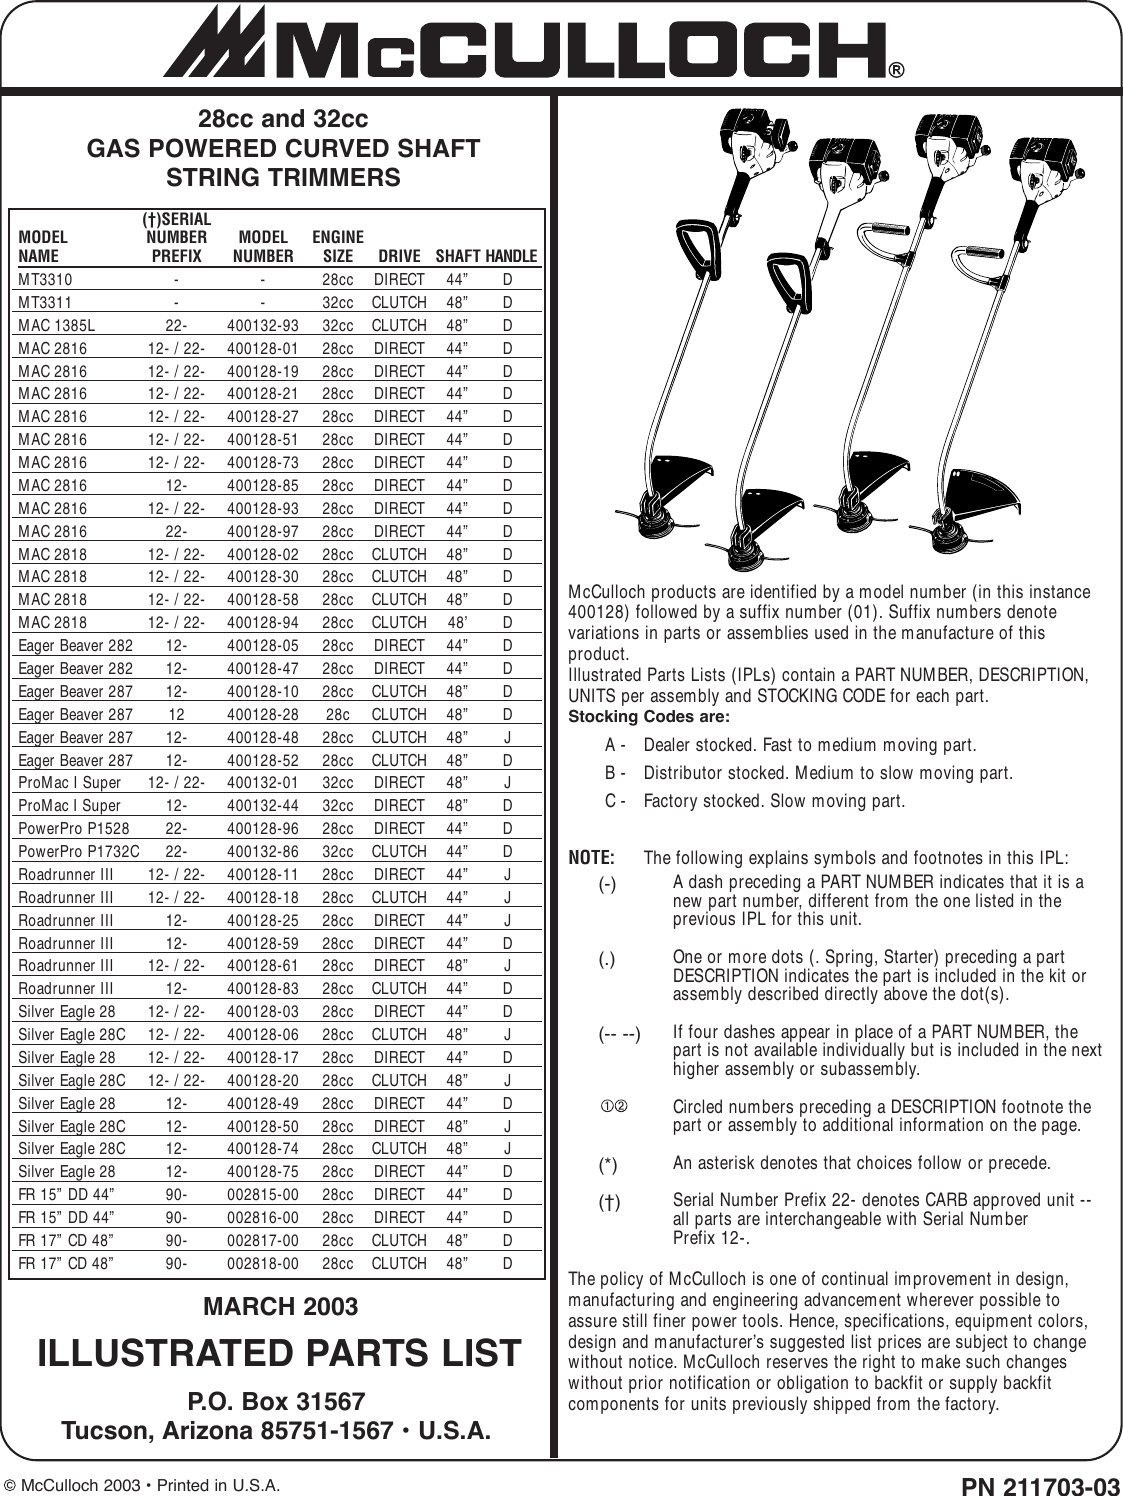 Mcculloch 28Cc Illustrated Parts Breakdown ManualsLib